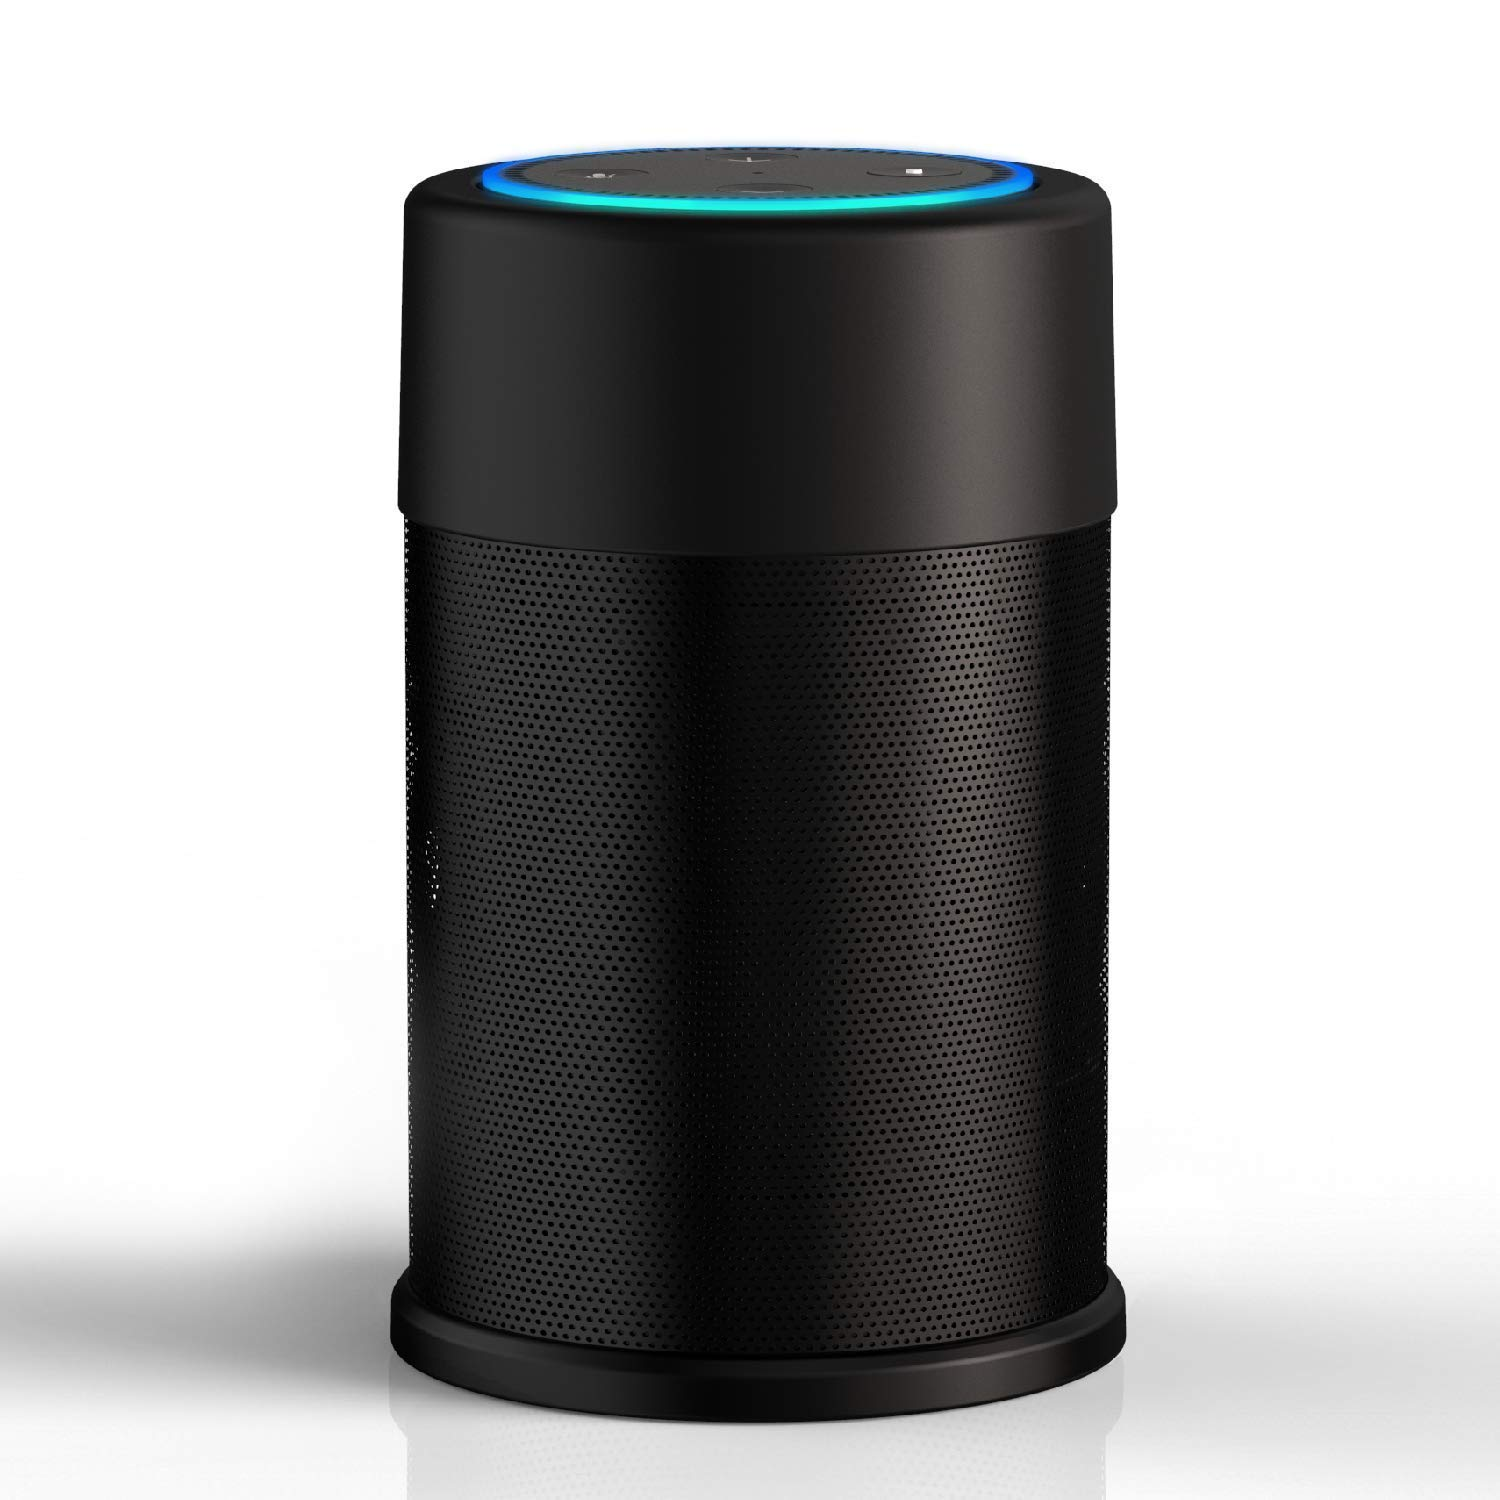 Portable Wireless Speaker for Echo Dot 2nd Generation with Built-in Rechargeable Battery - Unleash Your Alexa Philex Electronic Ltd 79203PI/17